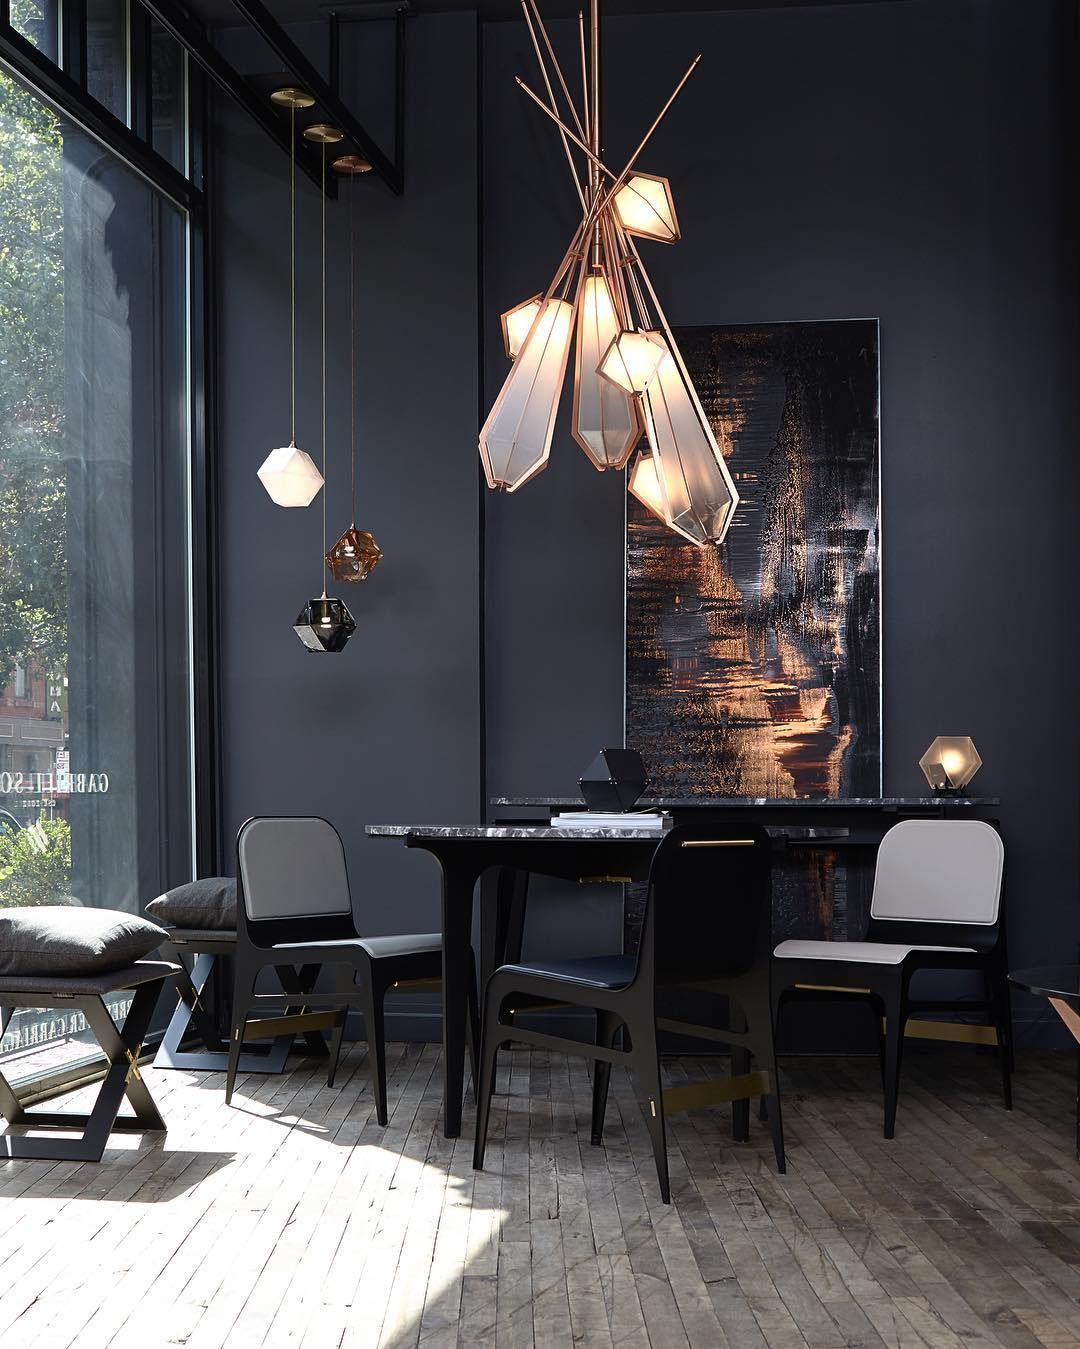 Covet Paris - A showroom with more 300 products exhibited #dunkleinnenräume